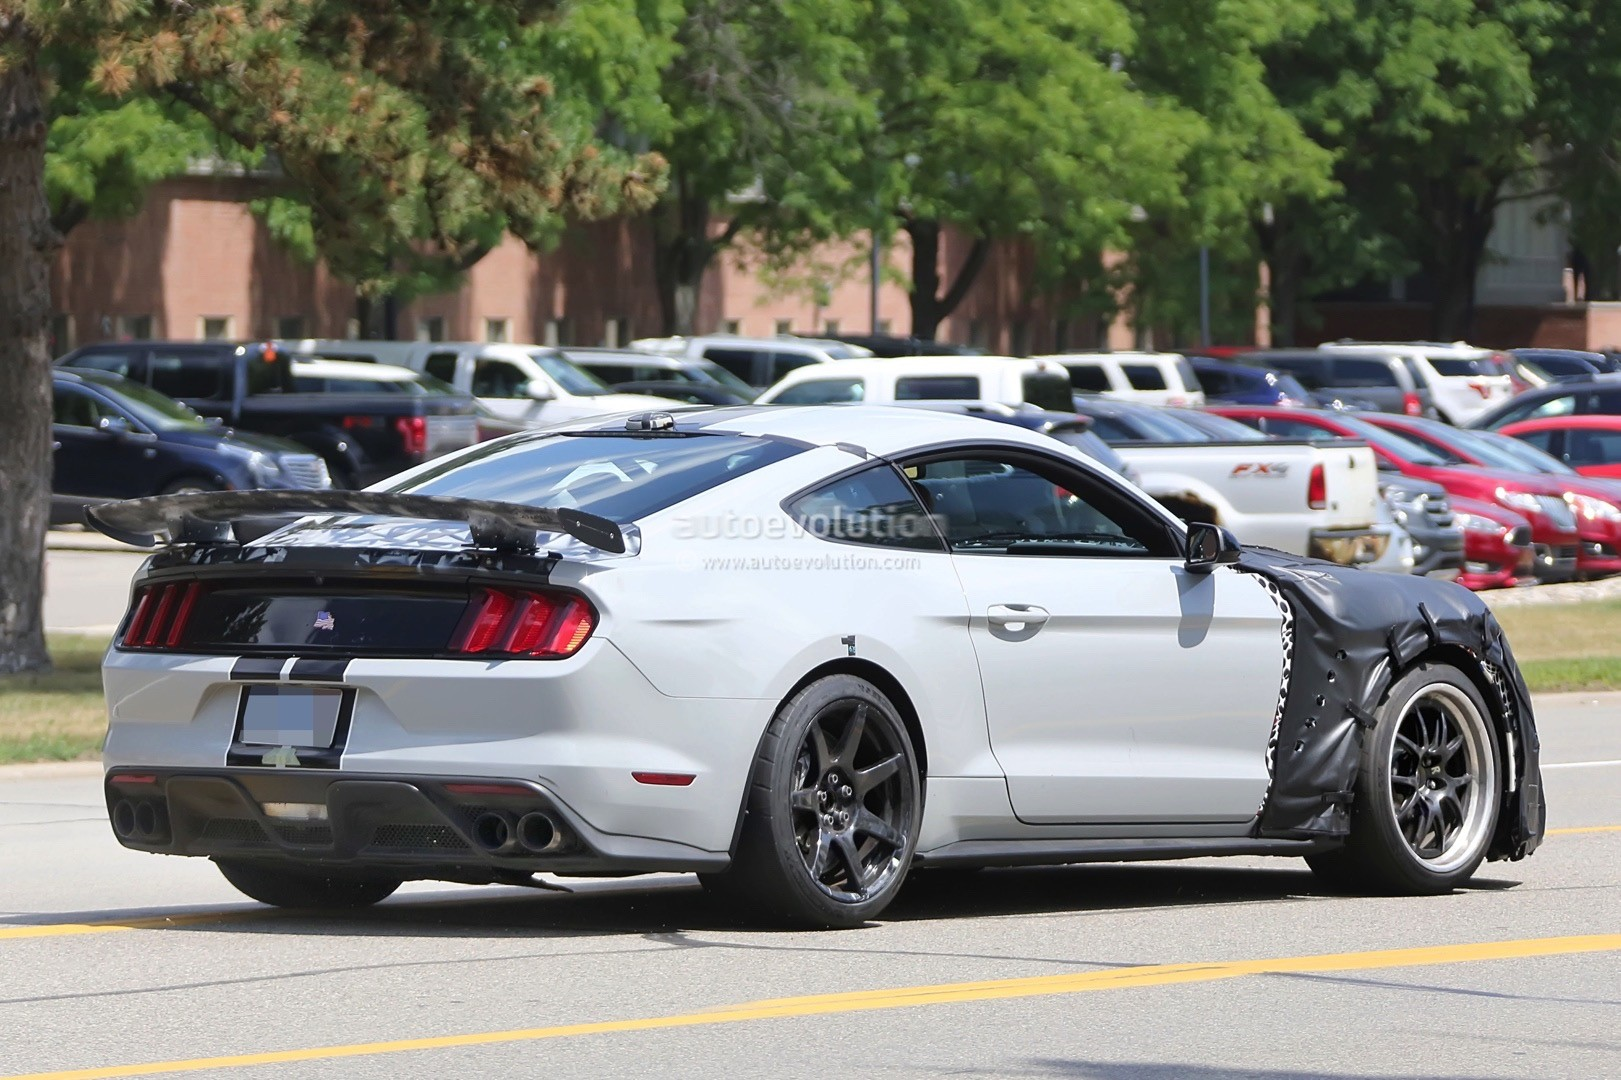 2019 Gt 500 >> 2018 Shelby GT350 Confirmed, 2019 Shelby GT500 Incoming - autoevolution